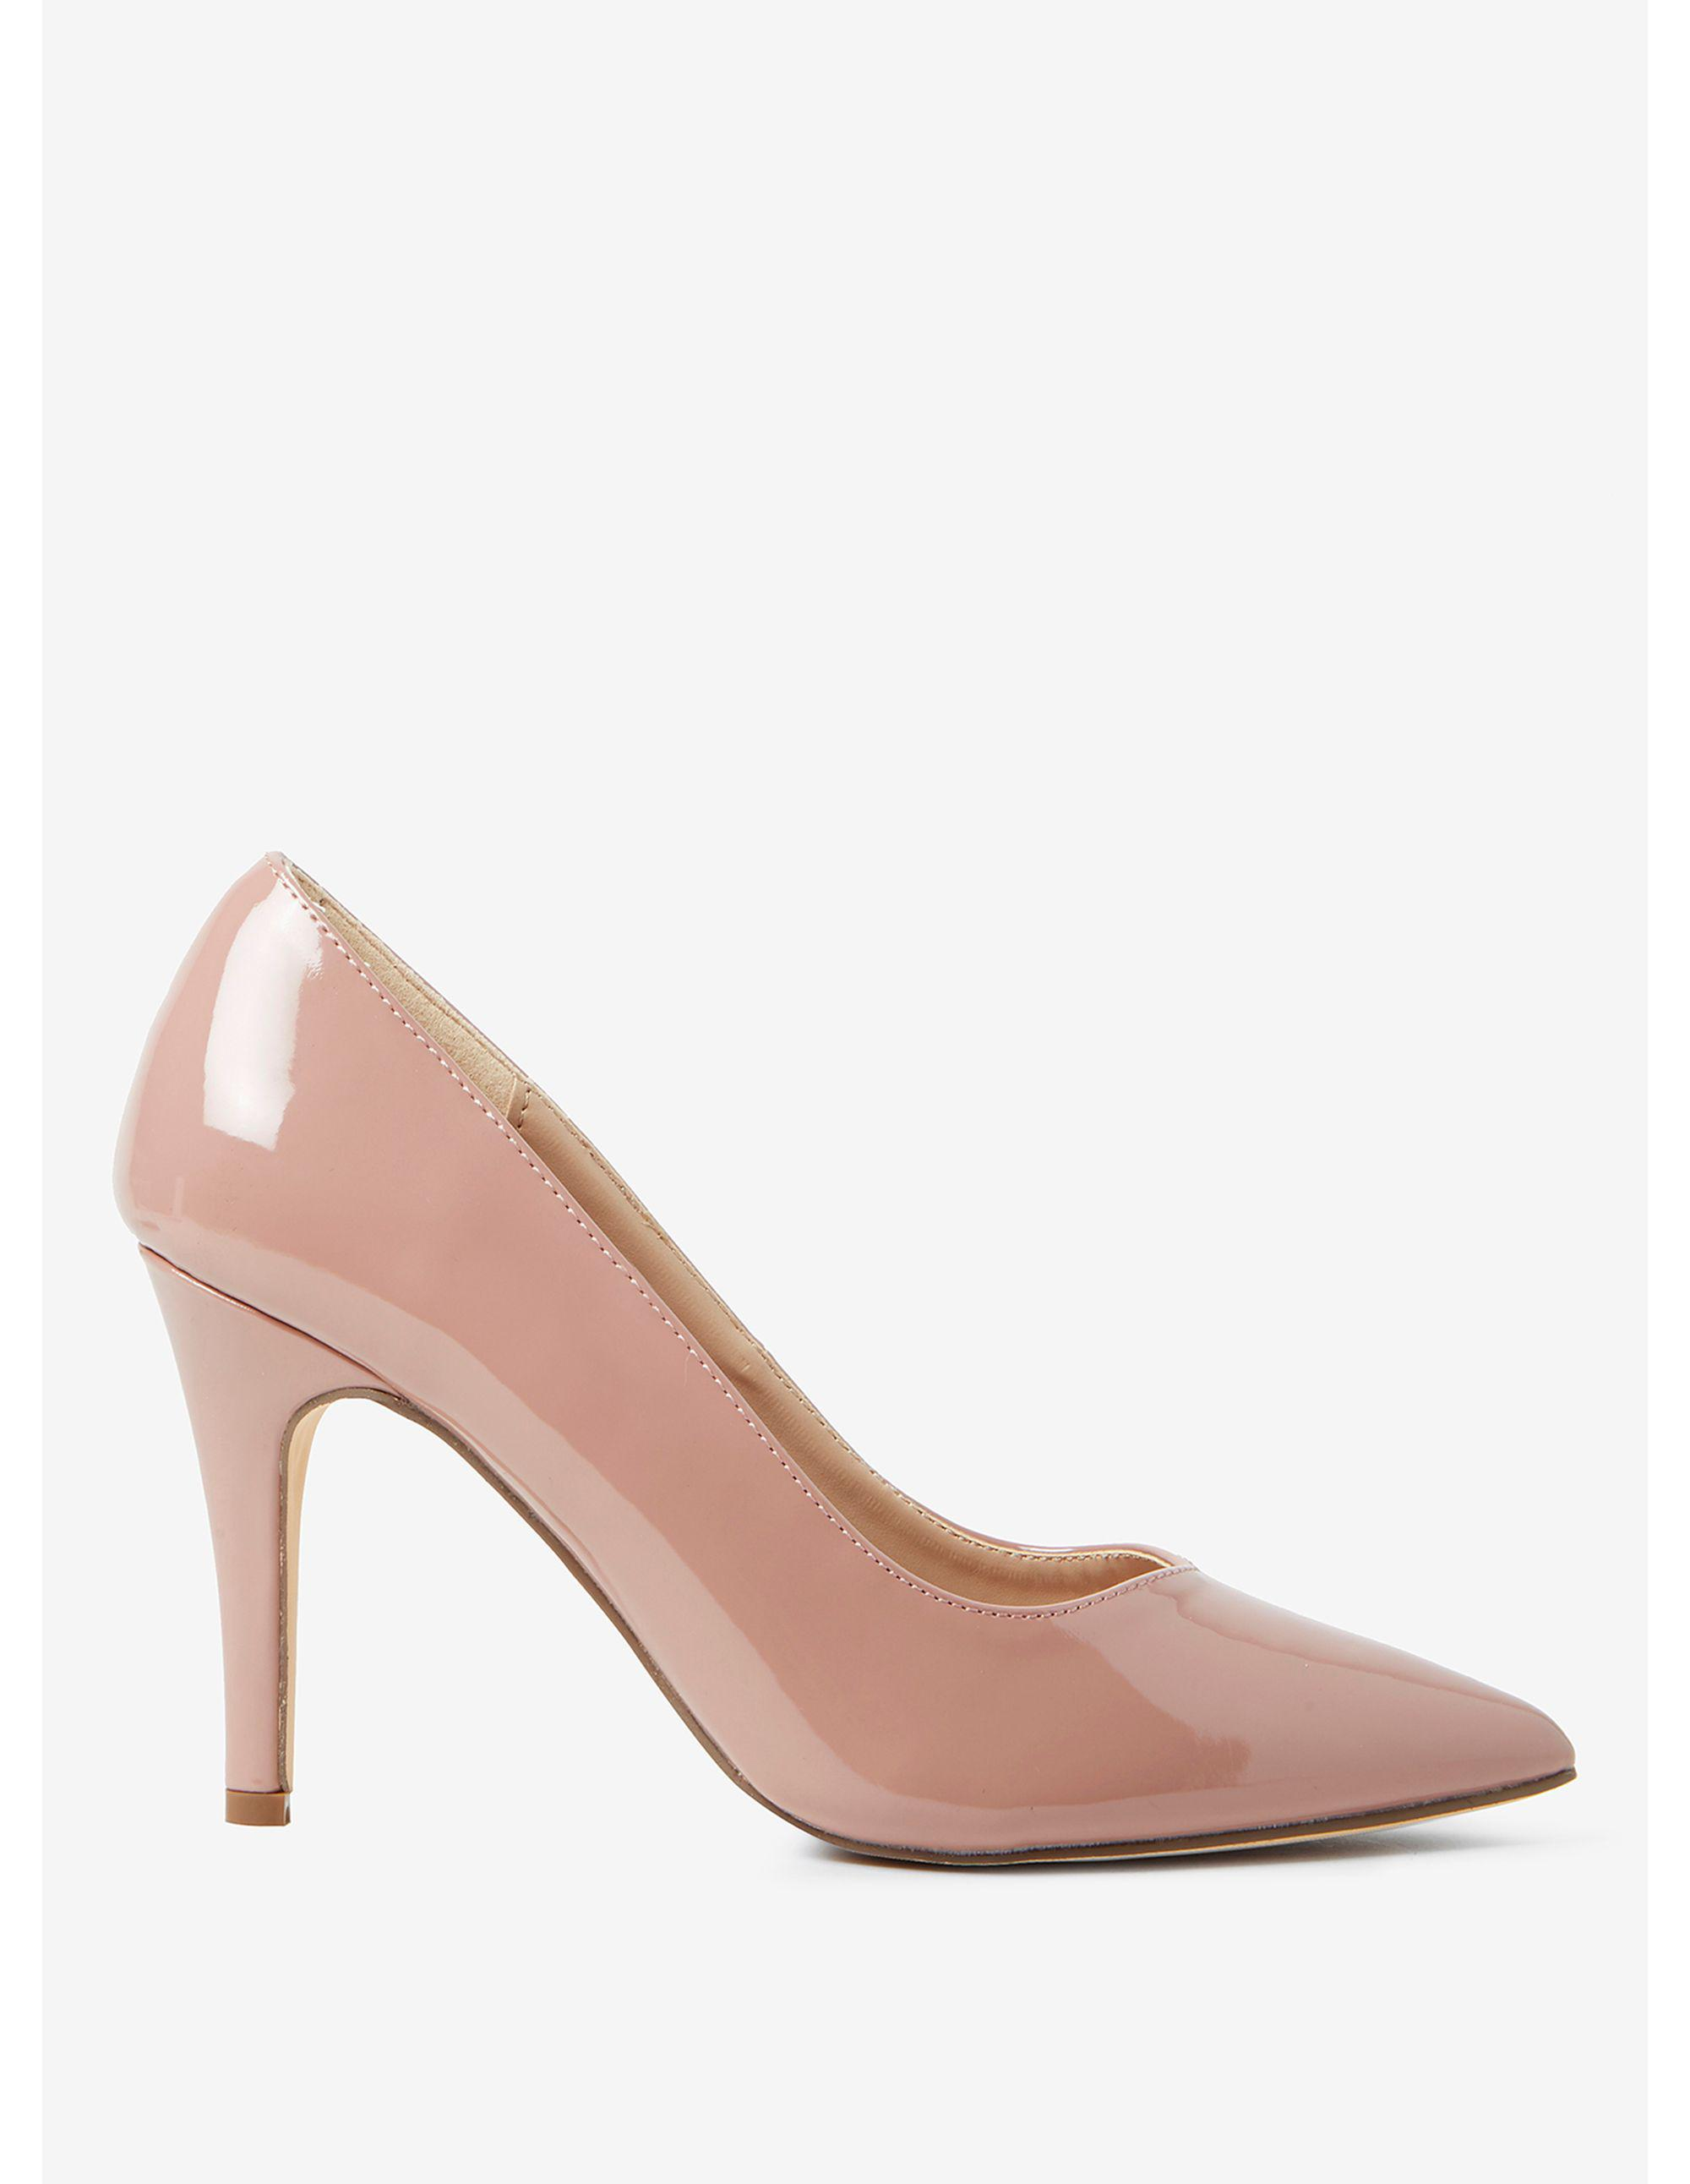 98830c459c Dorothy Perkins Rose Patent Drake Court Shoes in Pink - Lyst